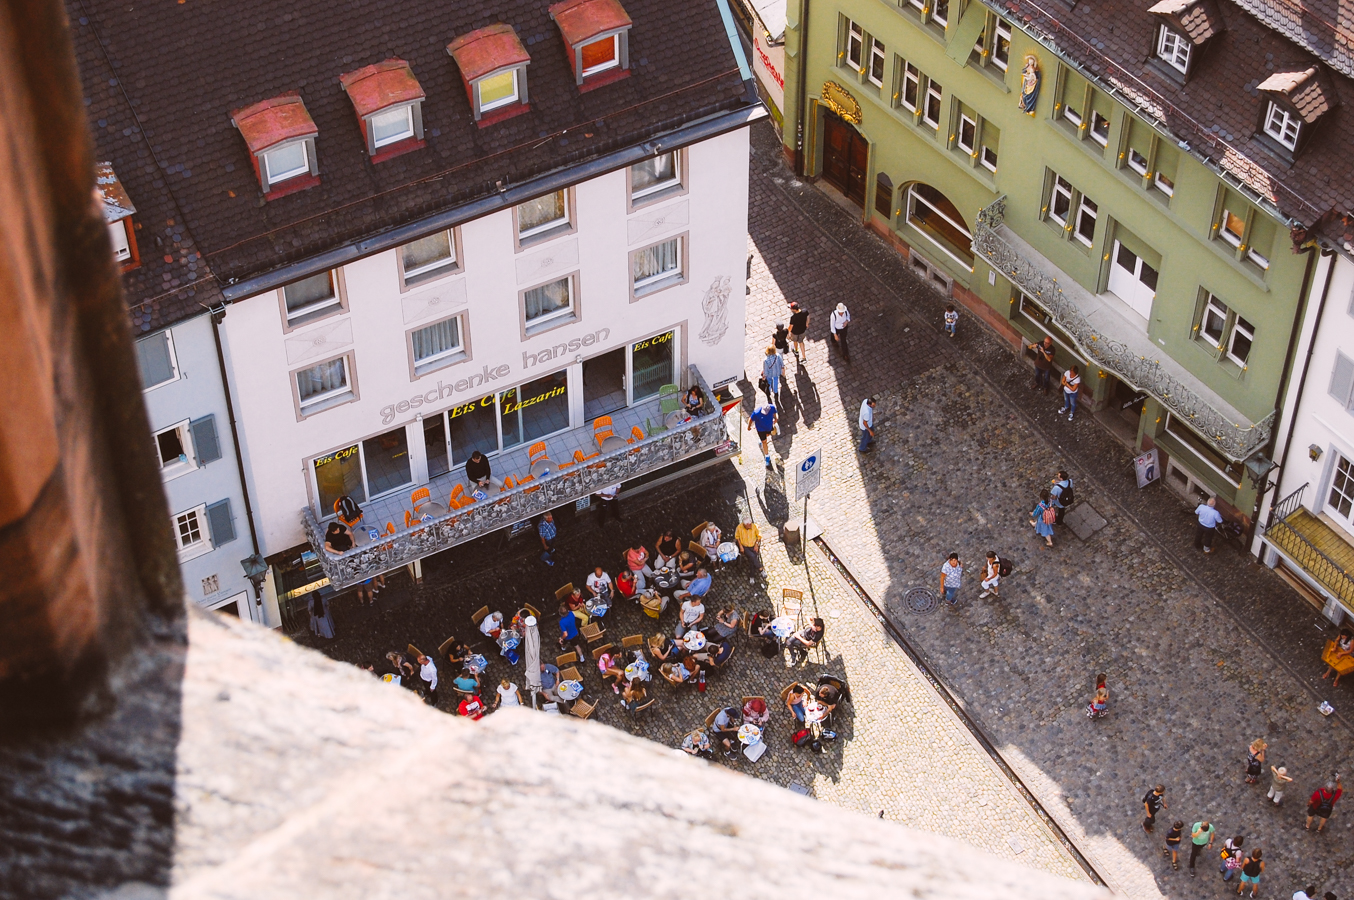 Looking down onto the main square of Freiburg